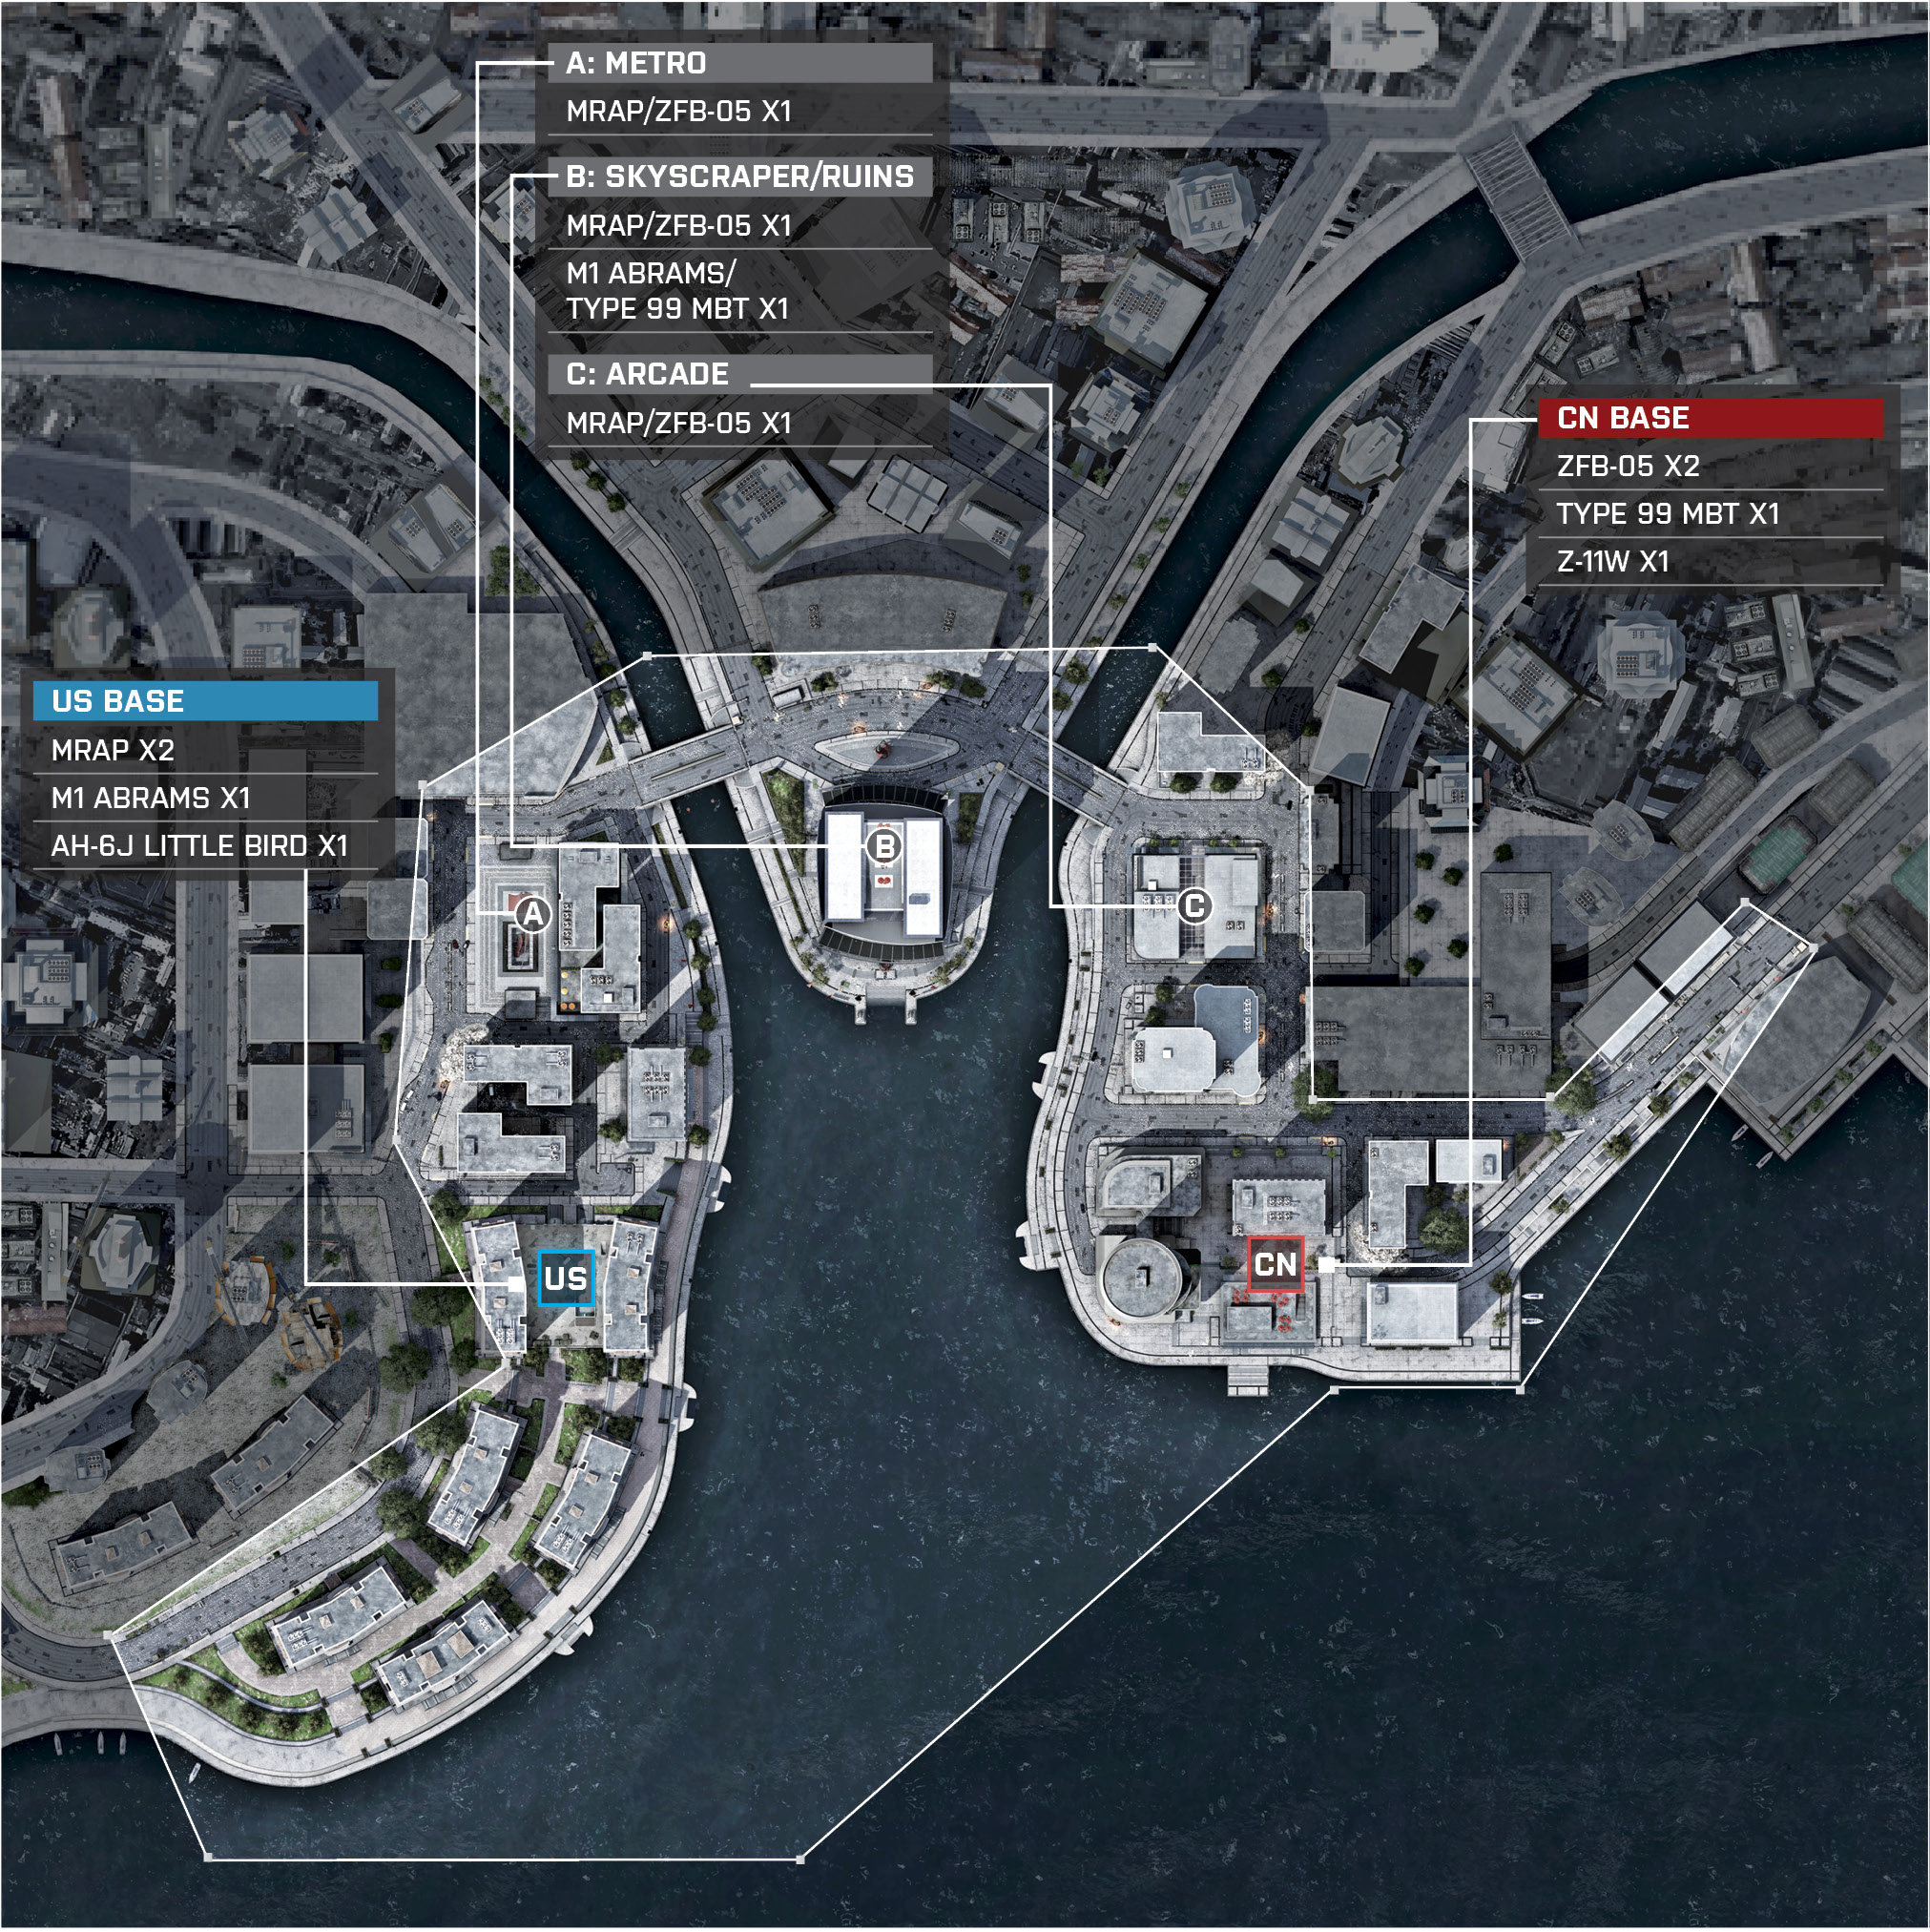 Bf4 Multiplayer Maps Related Keywords & Suggestions - Bf4